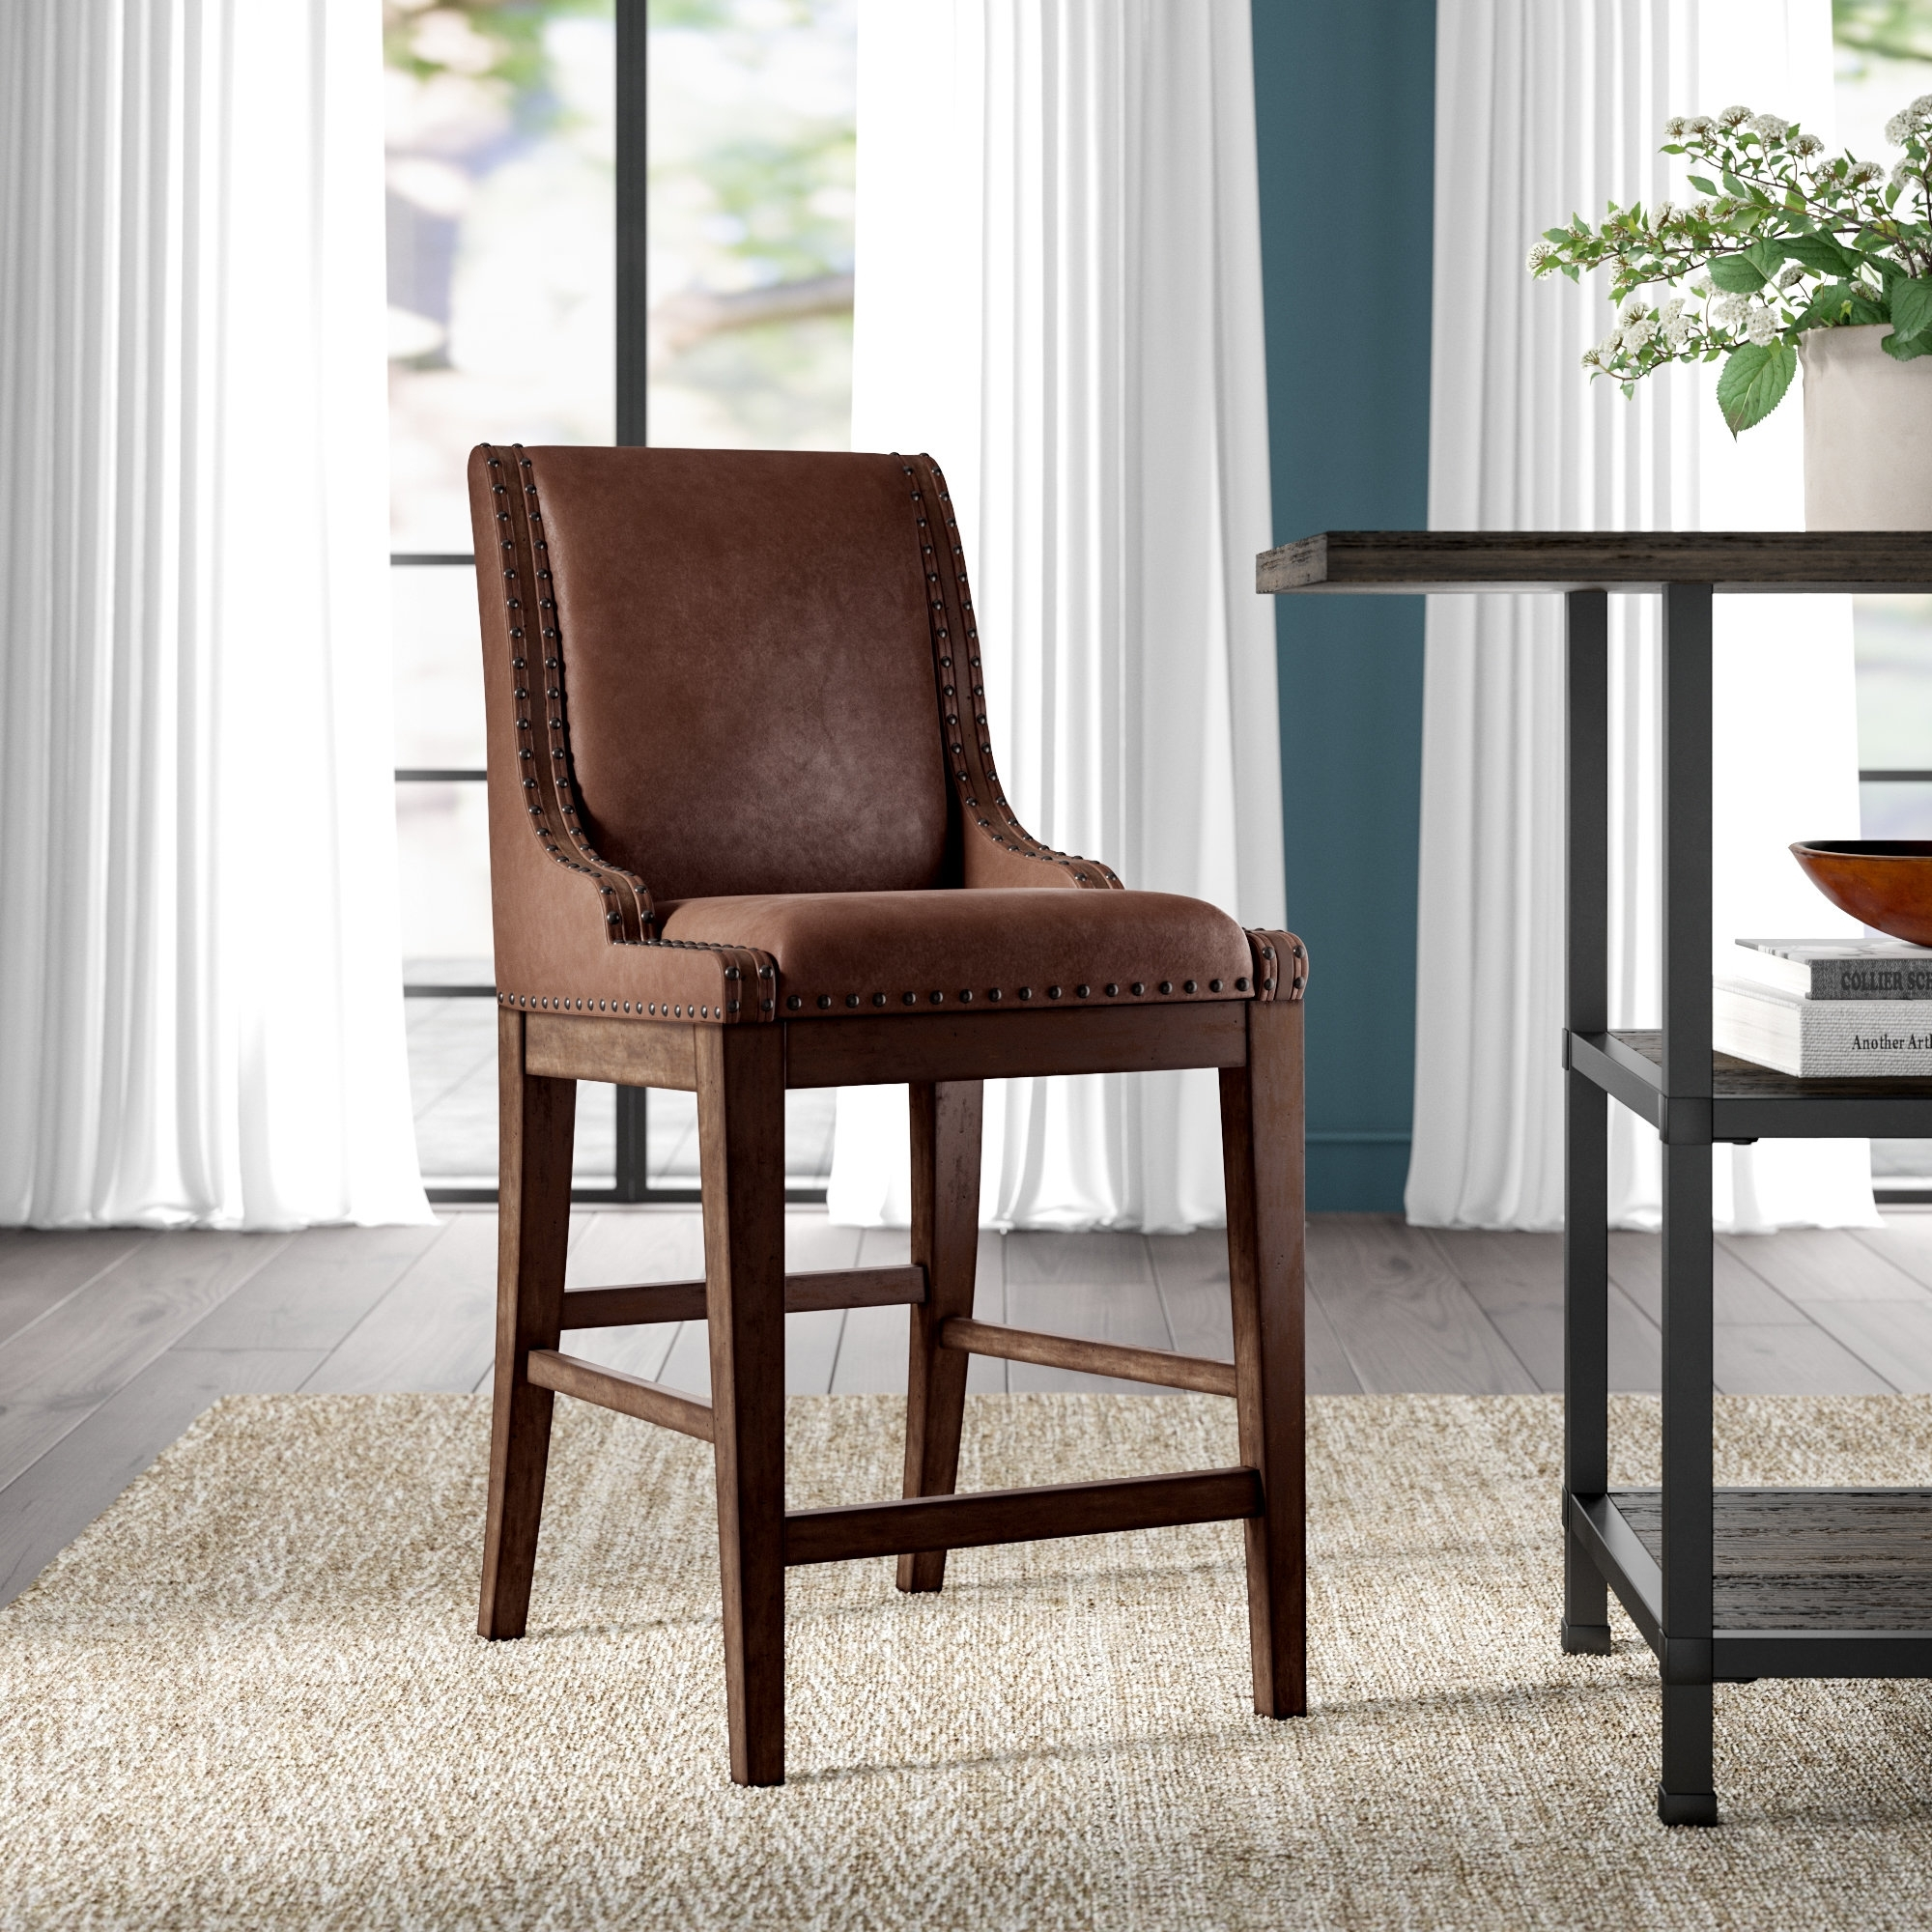 Greyleigh Cairo Upholstered Dining Chair | Wayfair Within Most Up To Date Caira Black 7 Piece Dining Sets With Upholstered Side Chairs (Image 12 of 20)